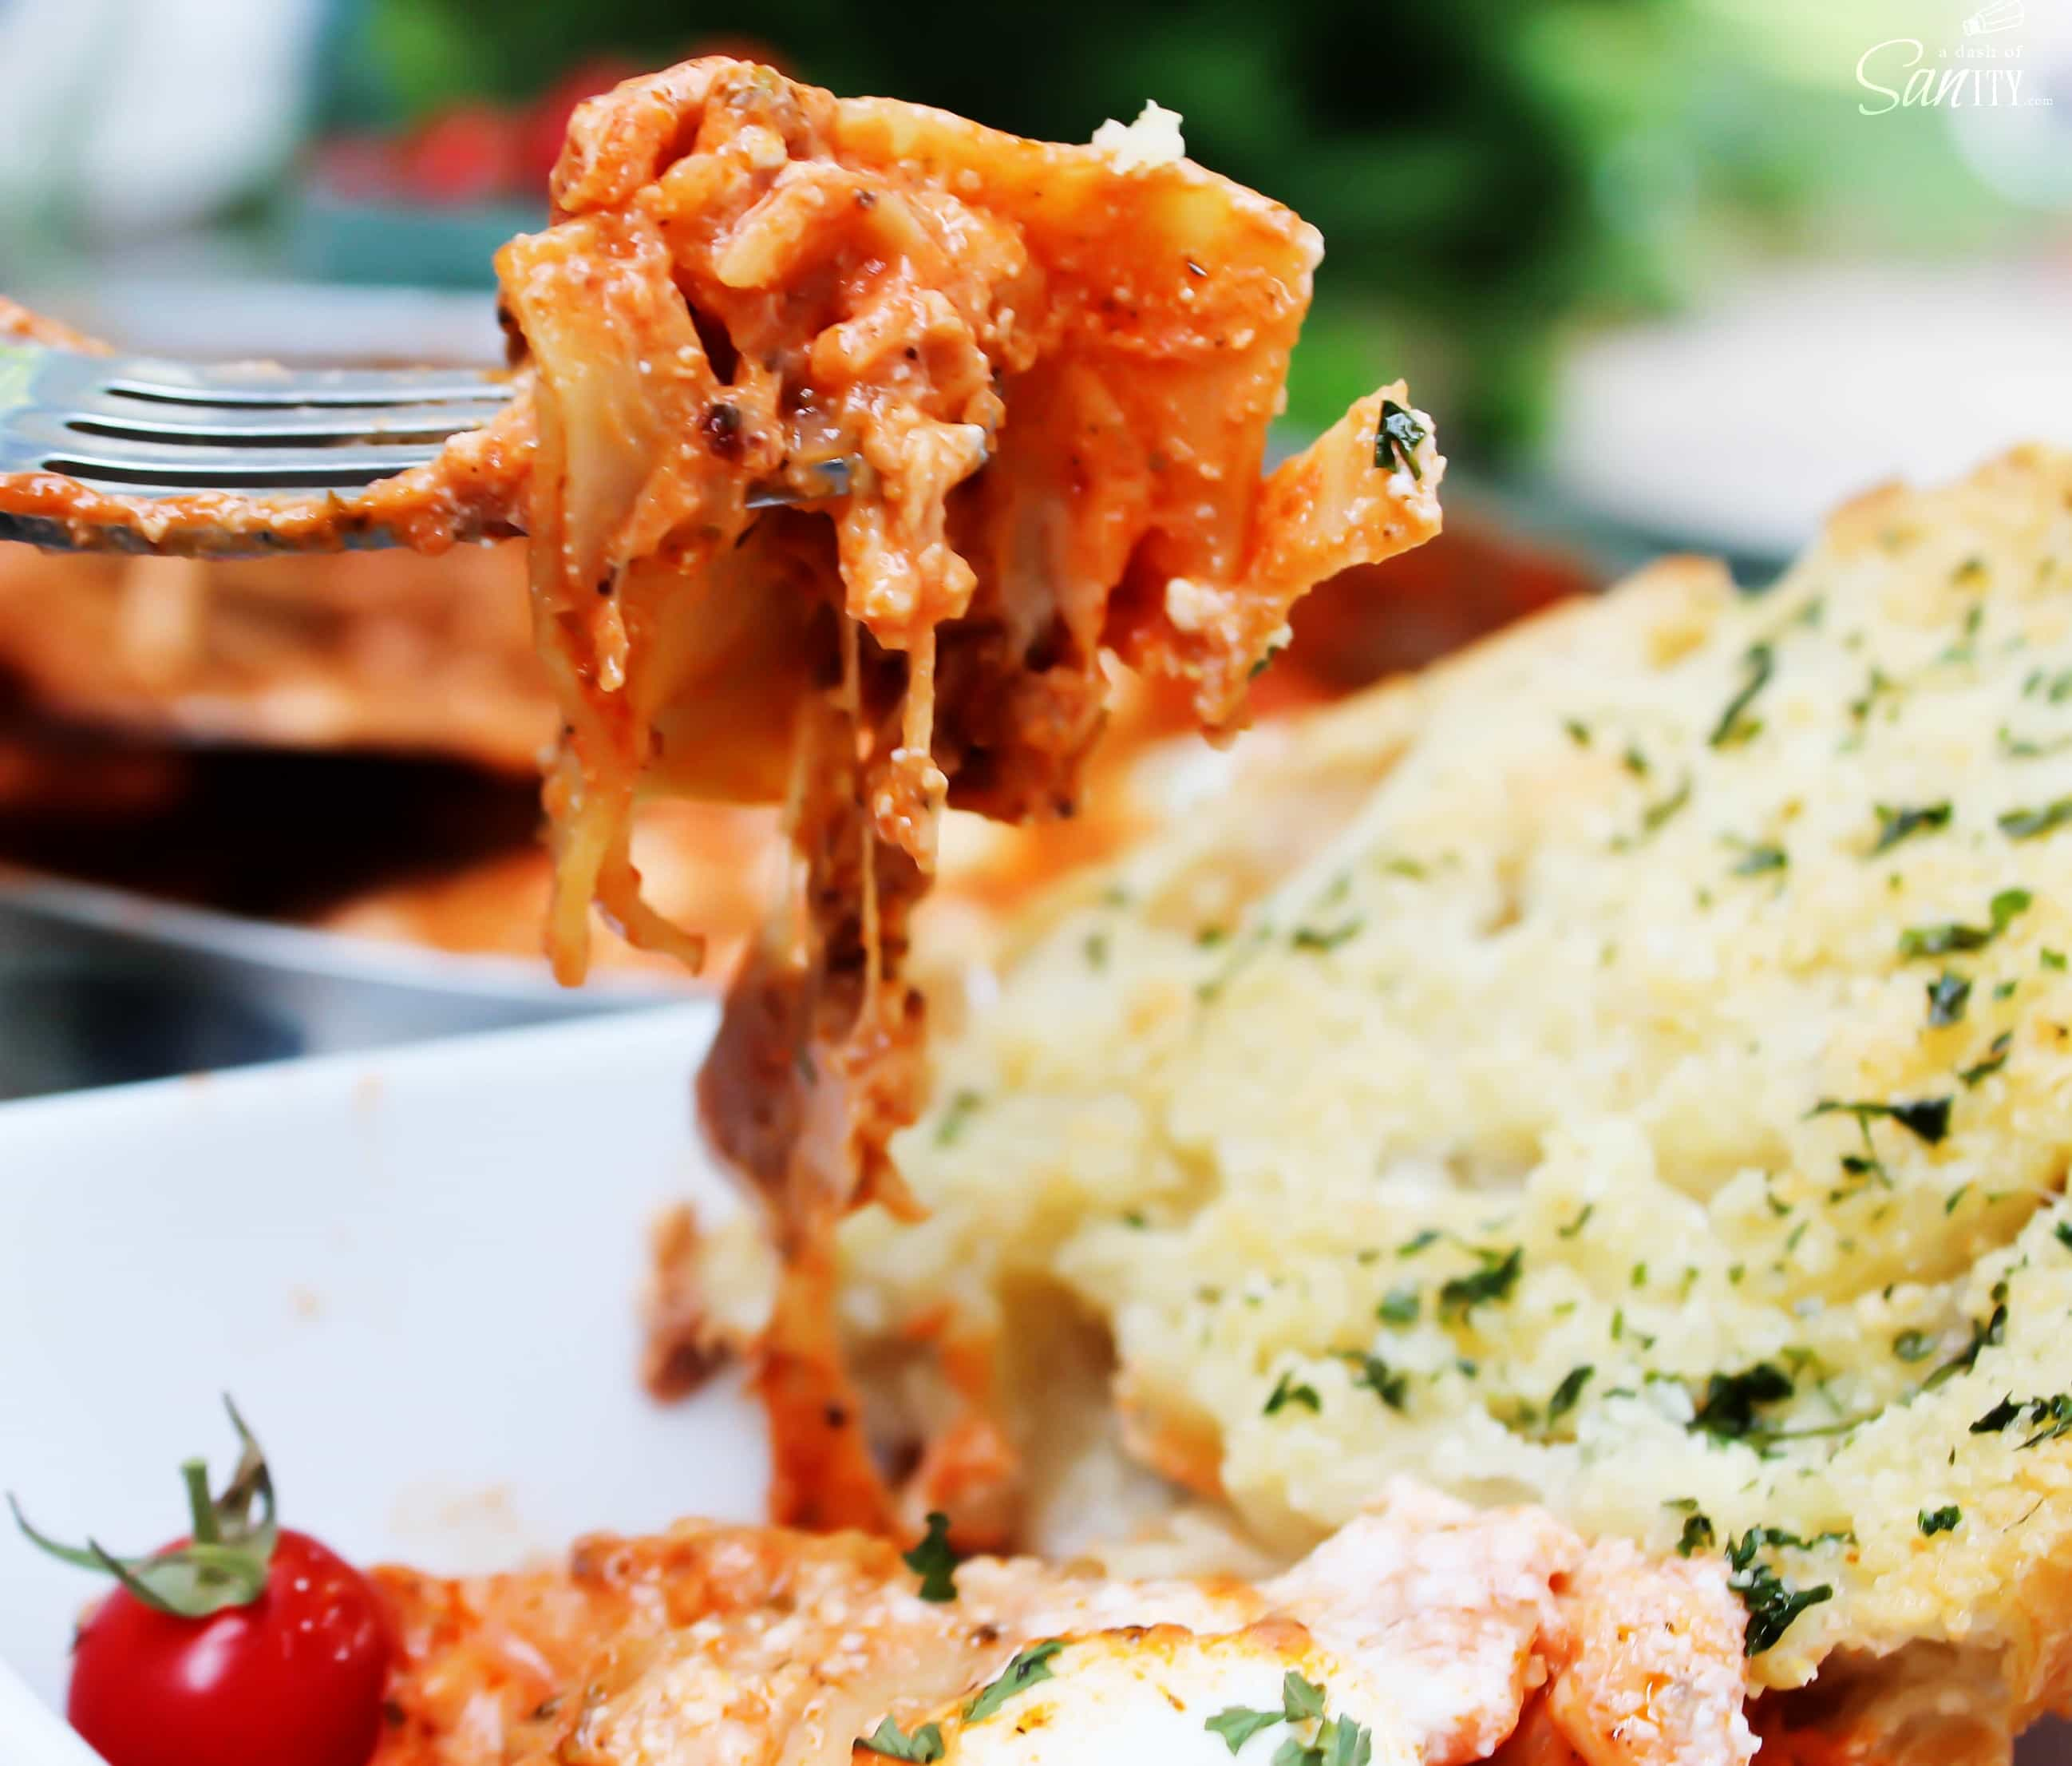 This Easy Skillet Lasagna is comfort food made in just one pot. This 25 minute meal is easy to make, with simple ingredients, and beyond delicious.